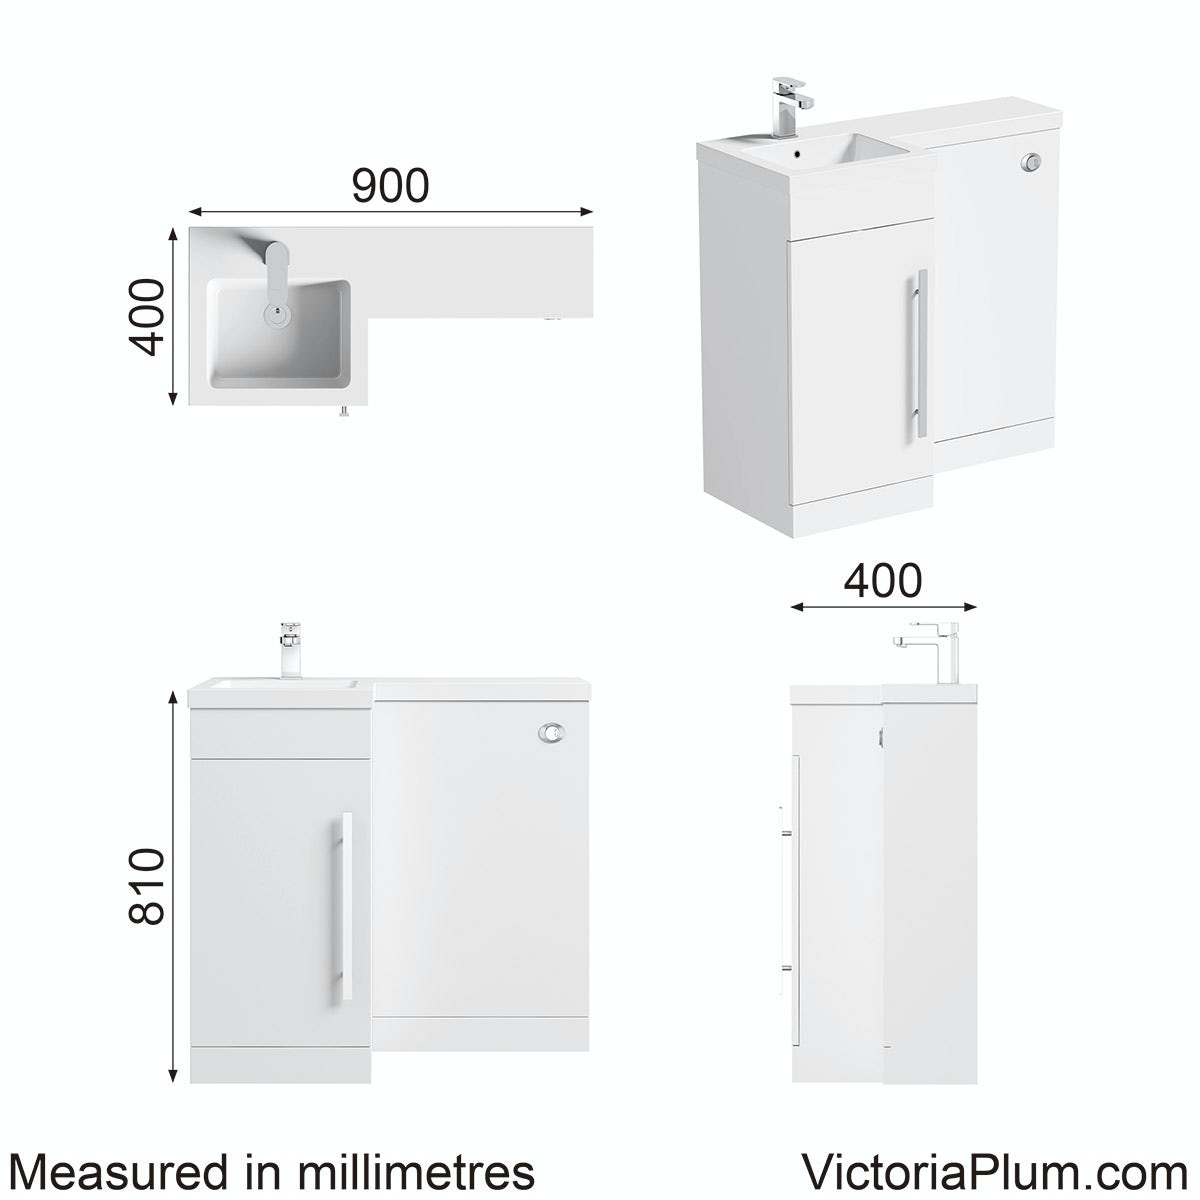 Dimensions for MySpace white left handed unit including concealed cistern